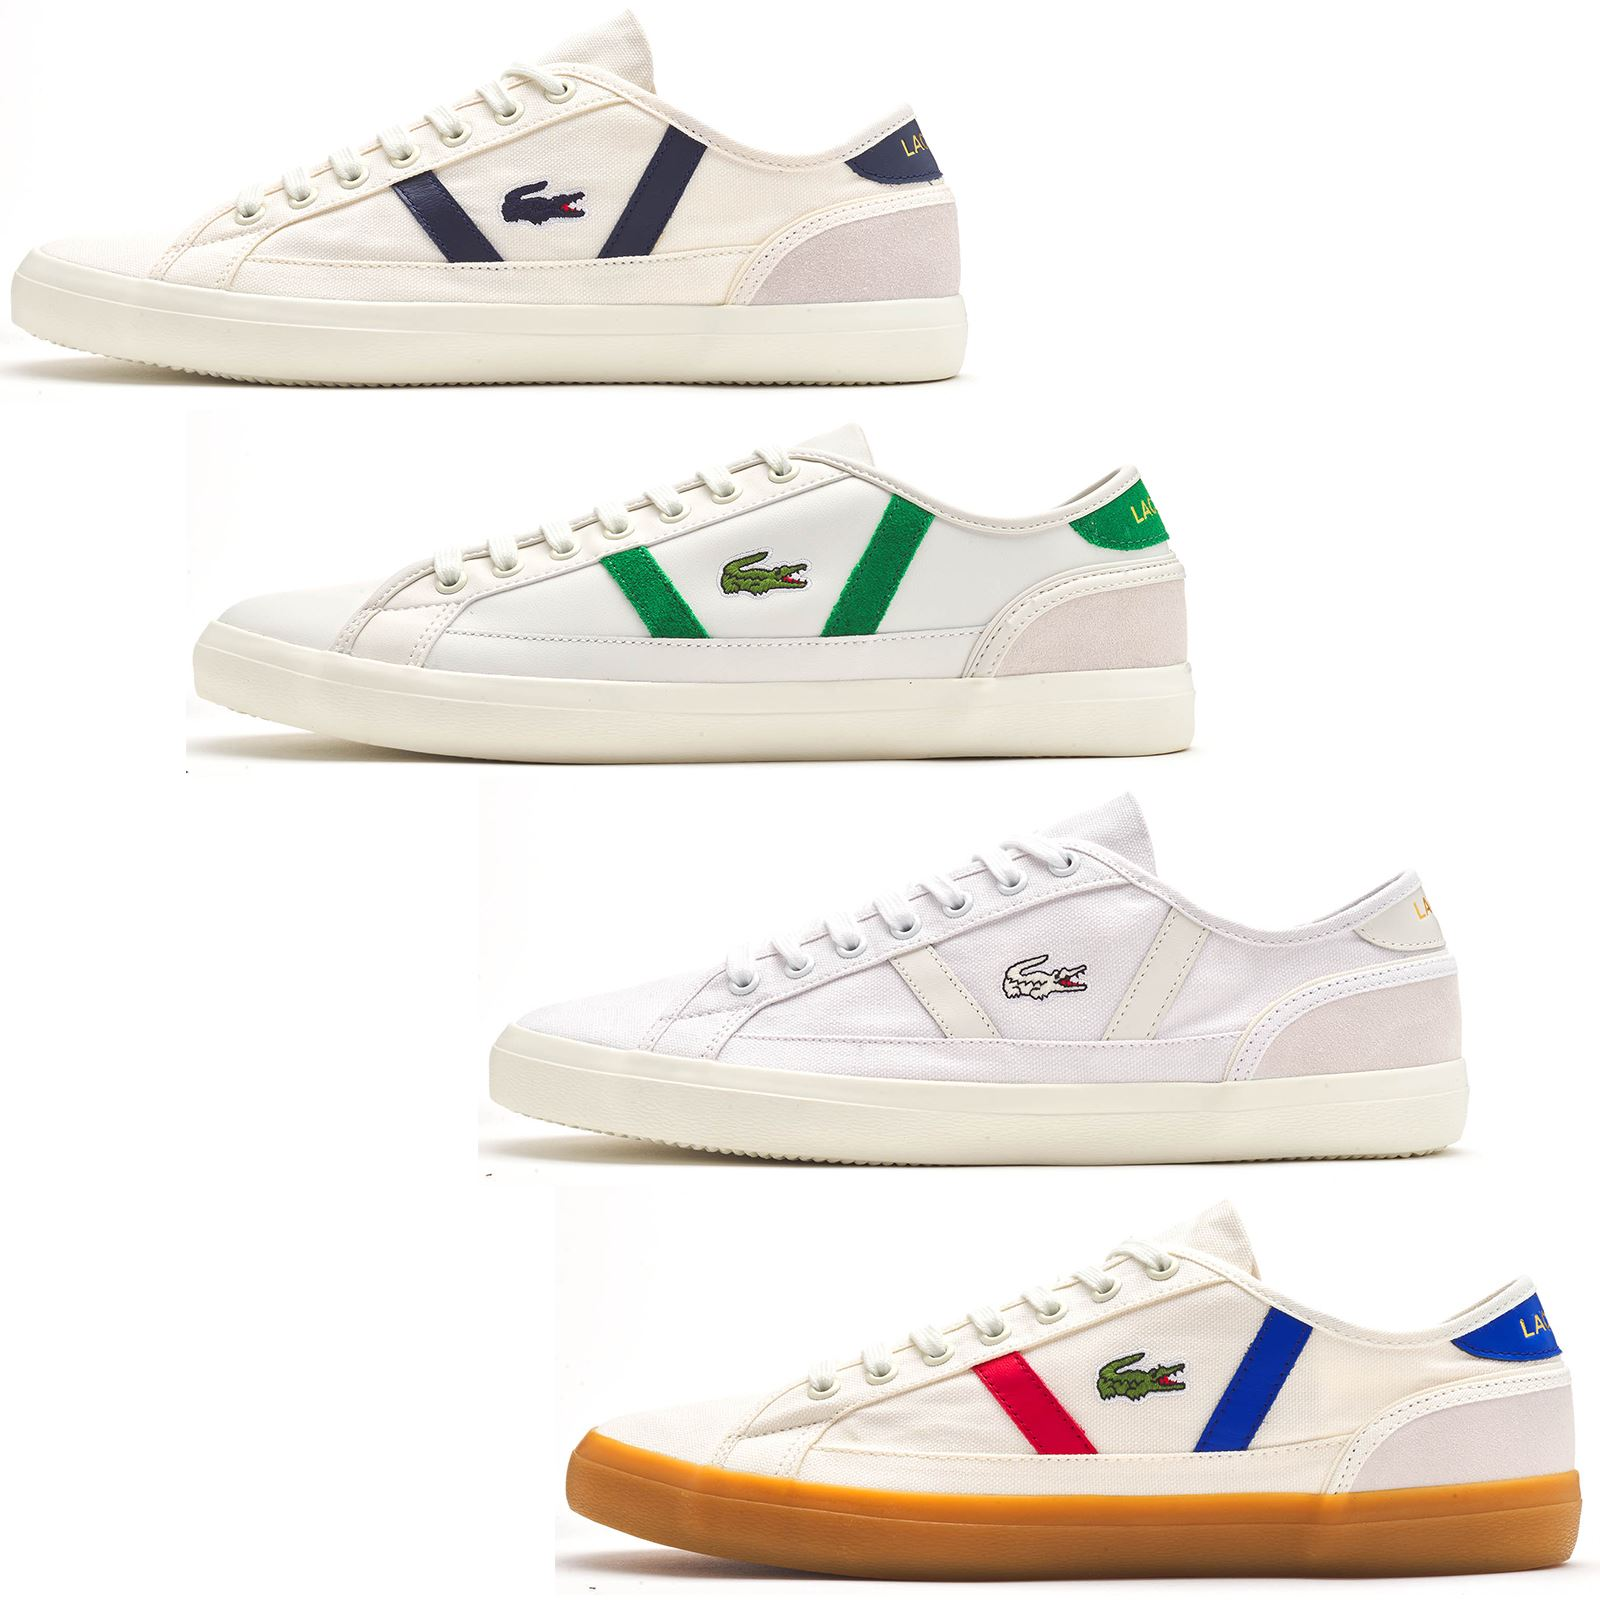 982c2f609d4b Details about Lacoste Sideline 119 CMA Metallic Lettered Heel Canvas    Leather White Trainers